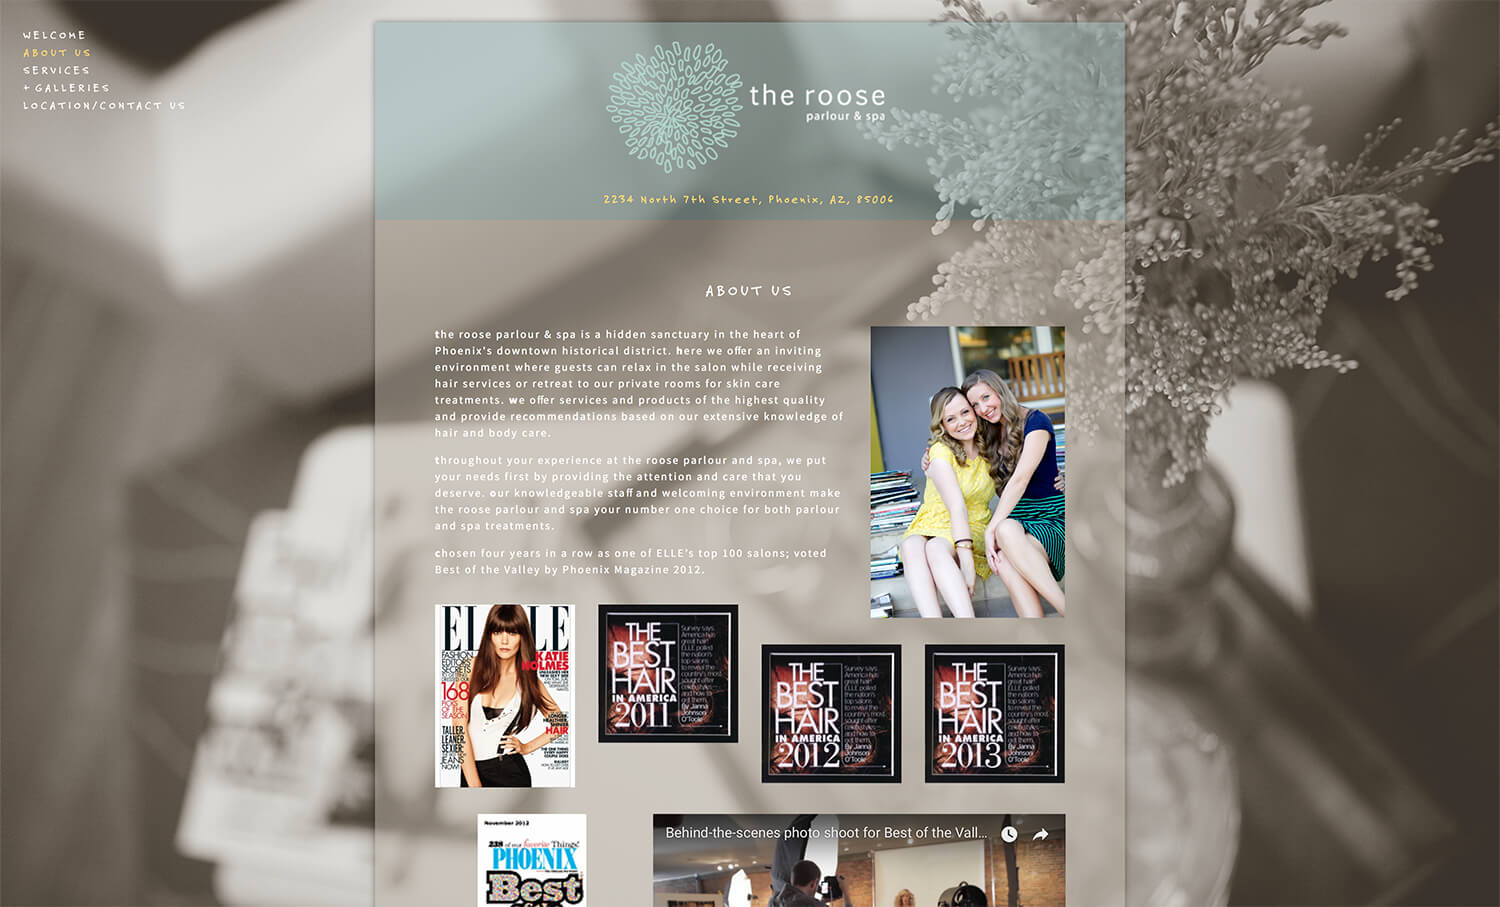 About page for the old roose design